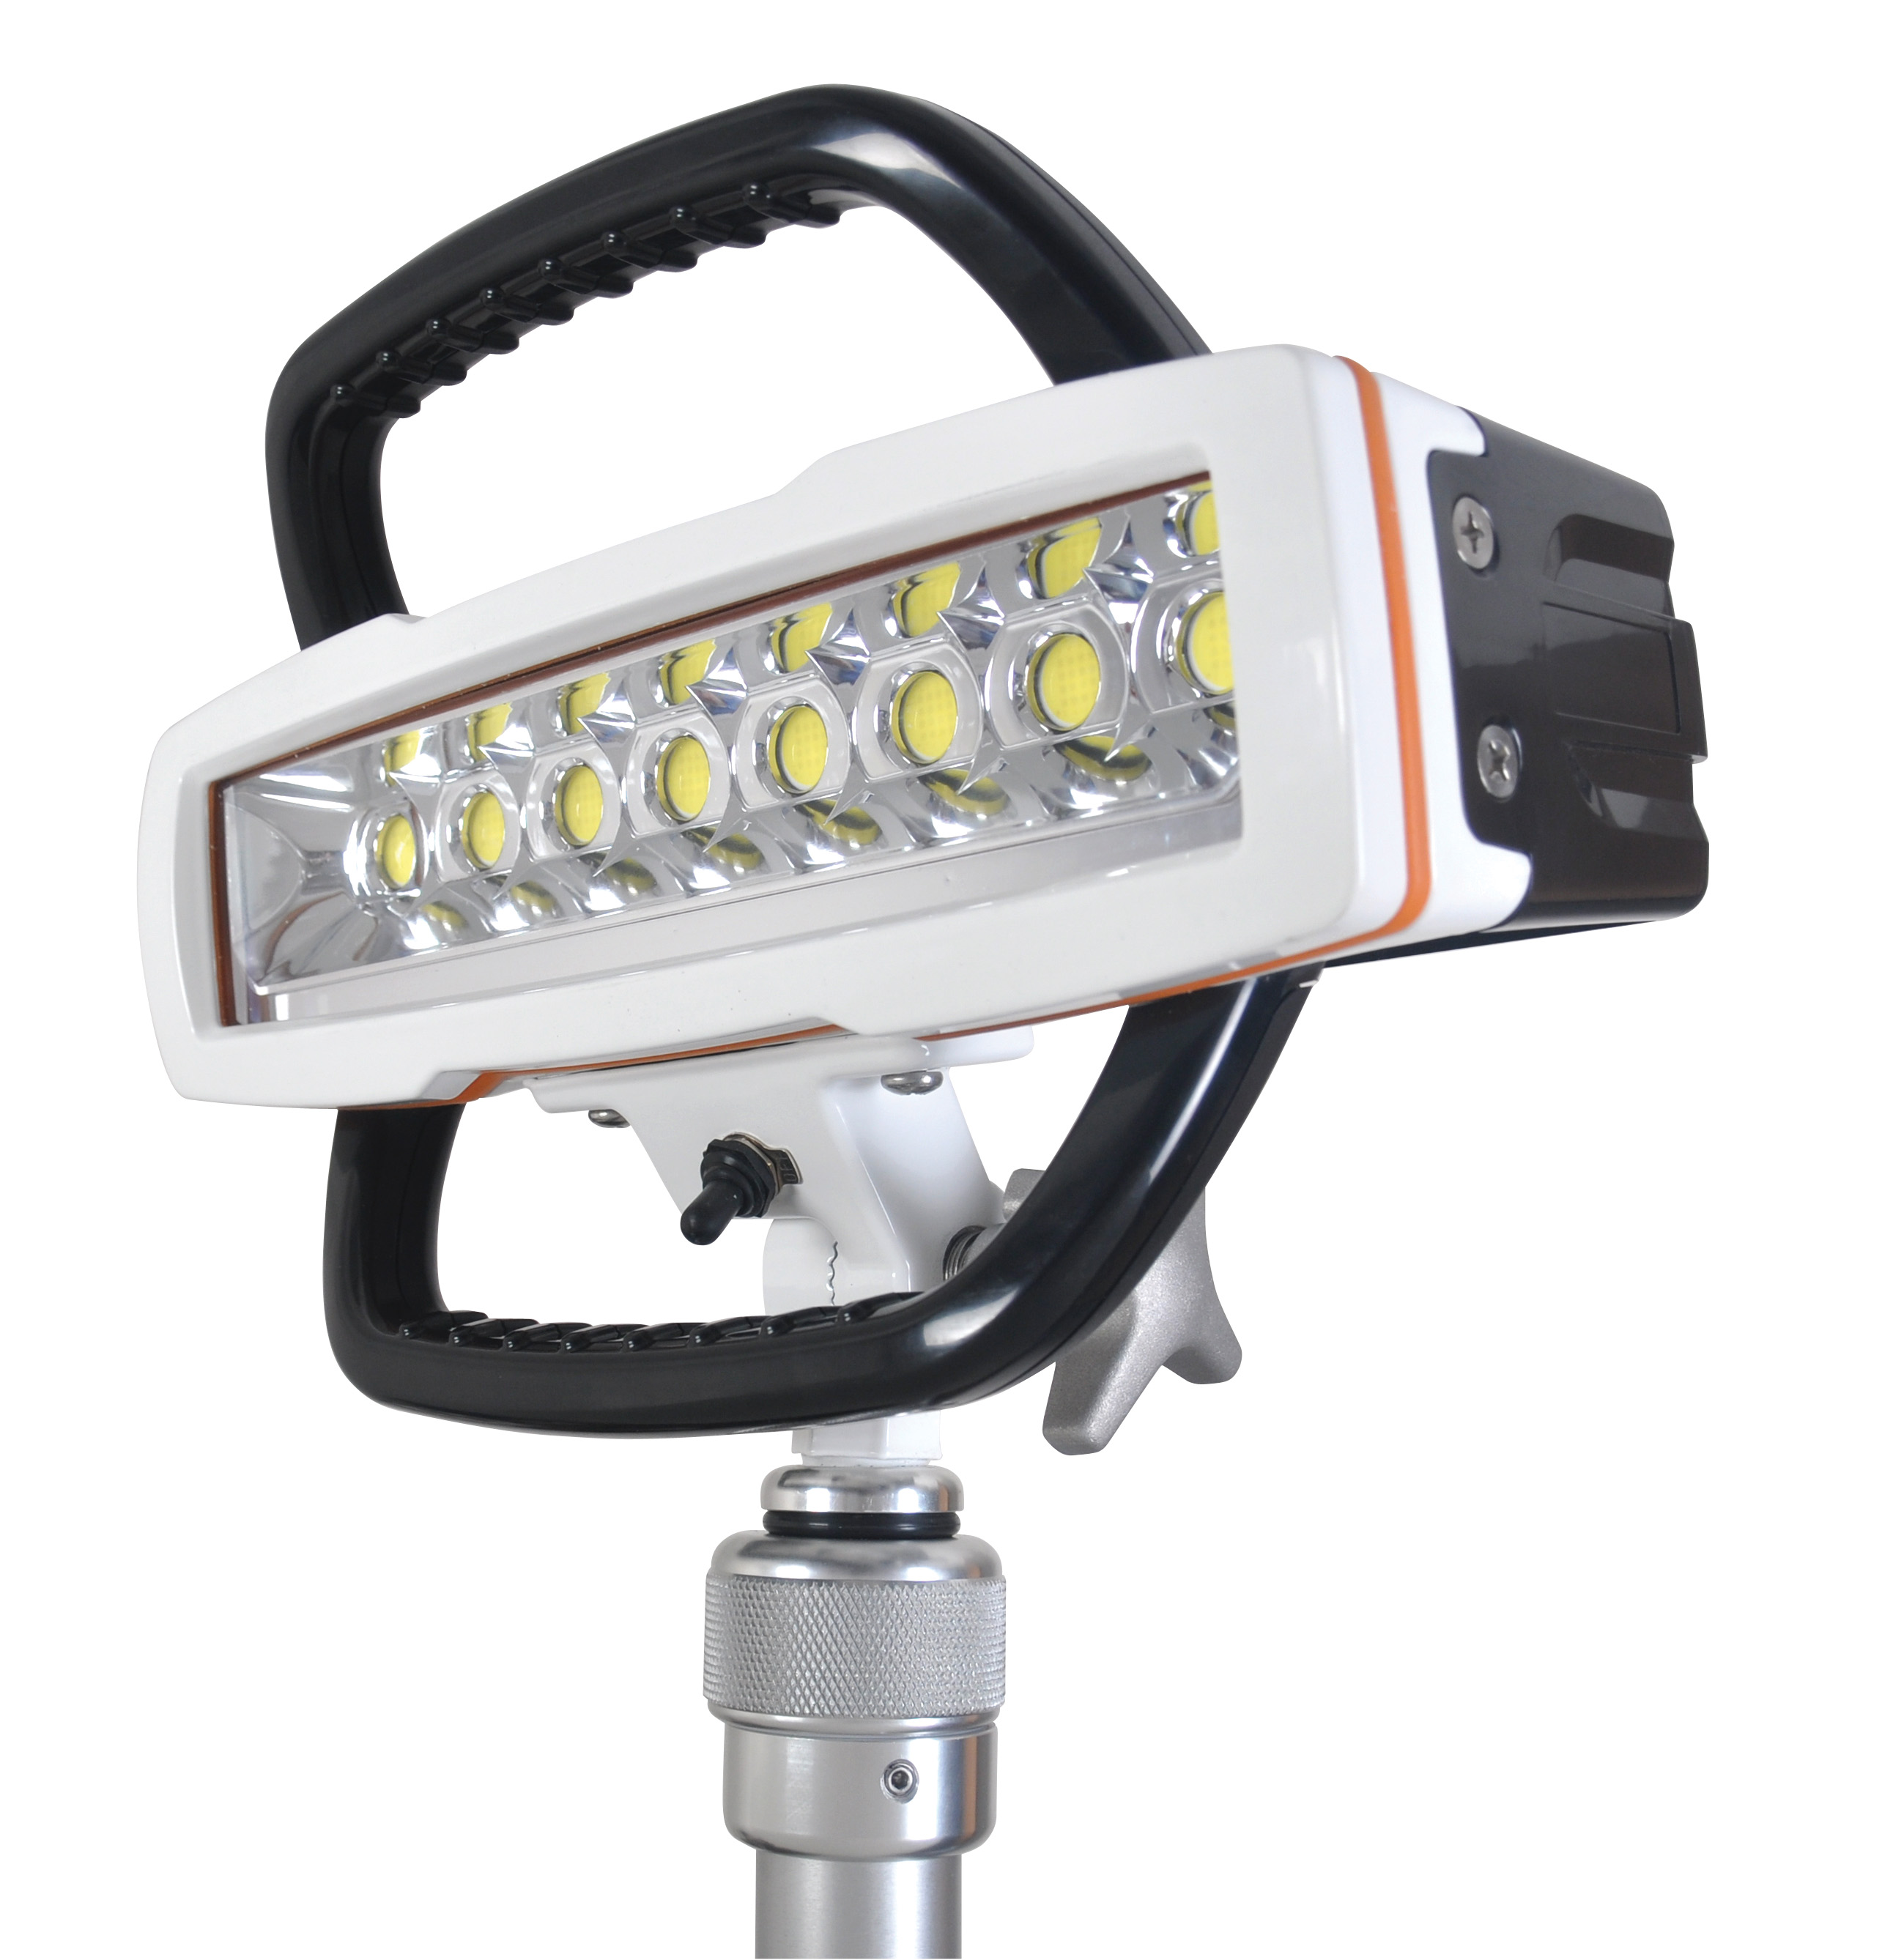 SceneStar LED Head Only